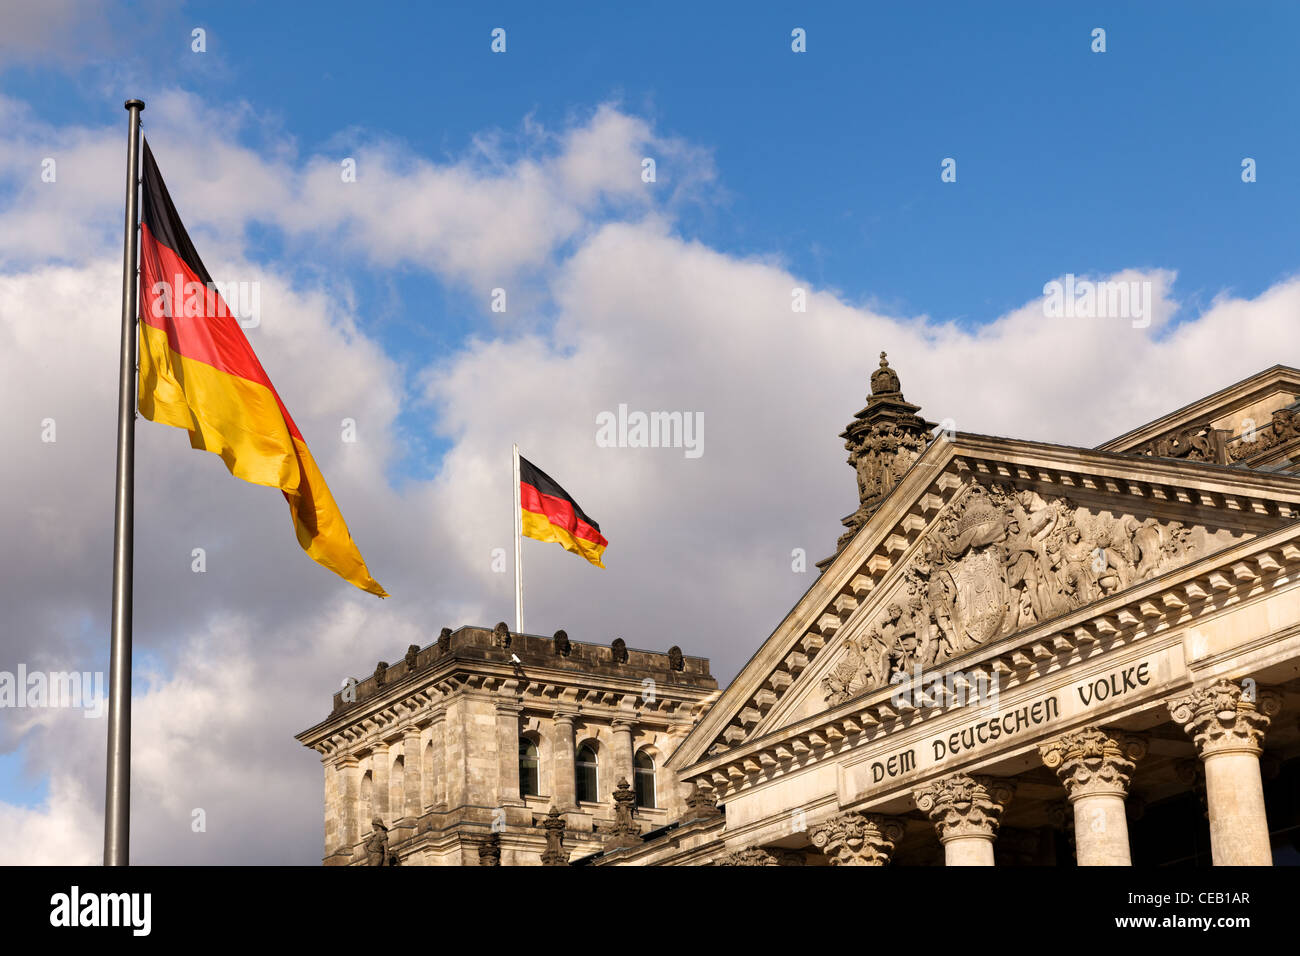 German flags flying at the Reichstag, the seat of the Bundestag, the German Federal Parliament. - Stock Image